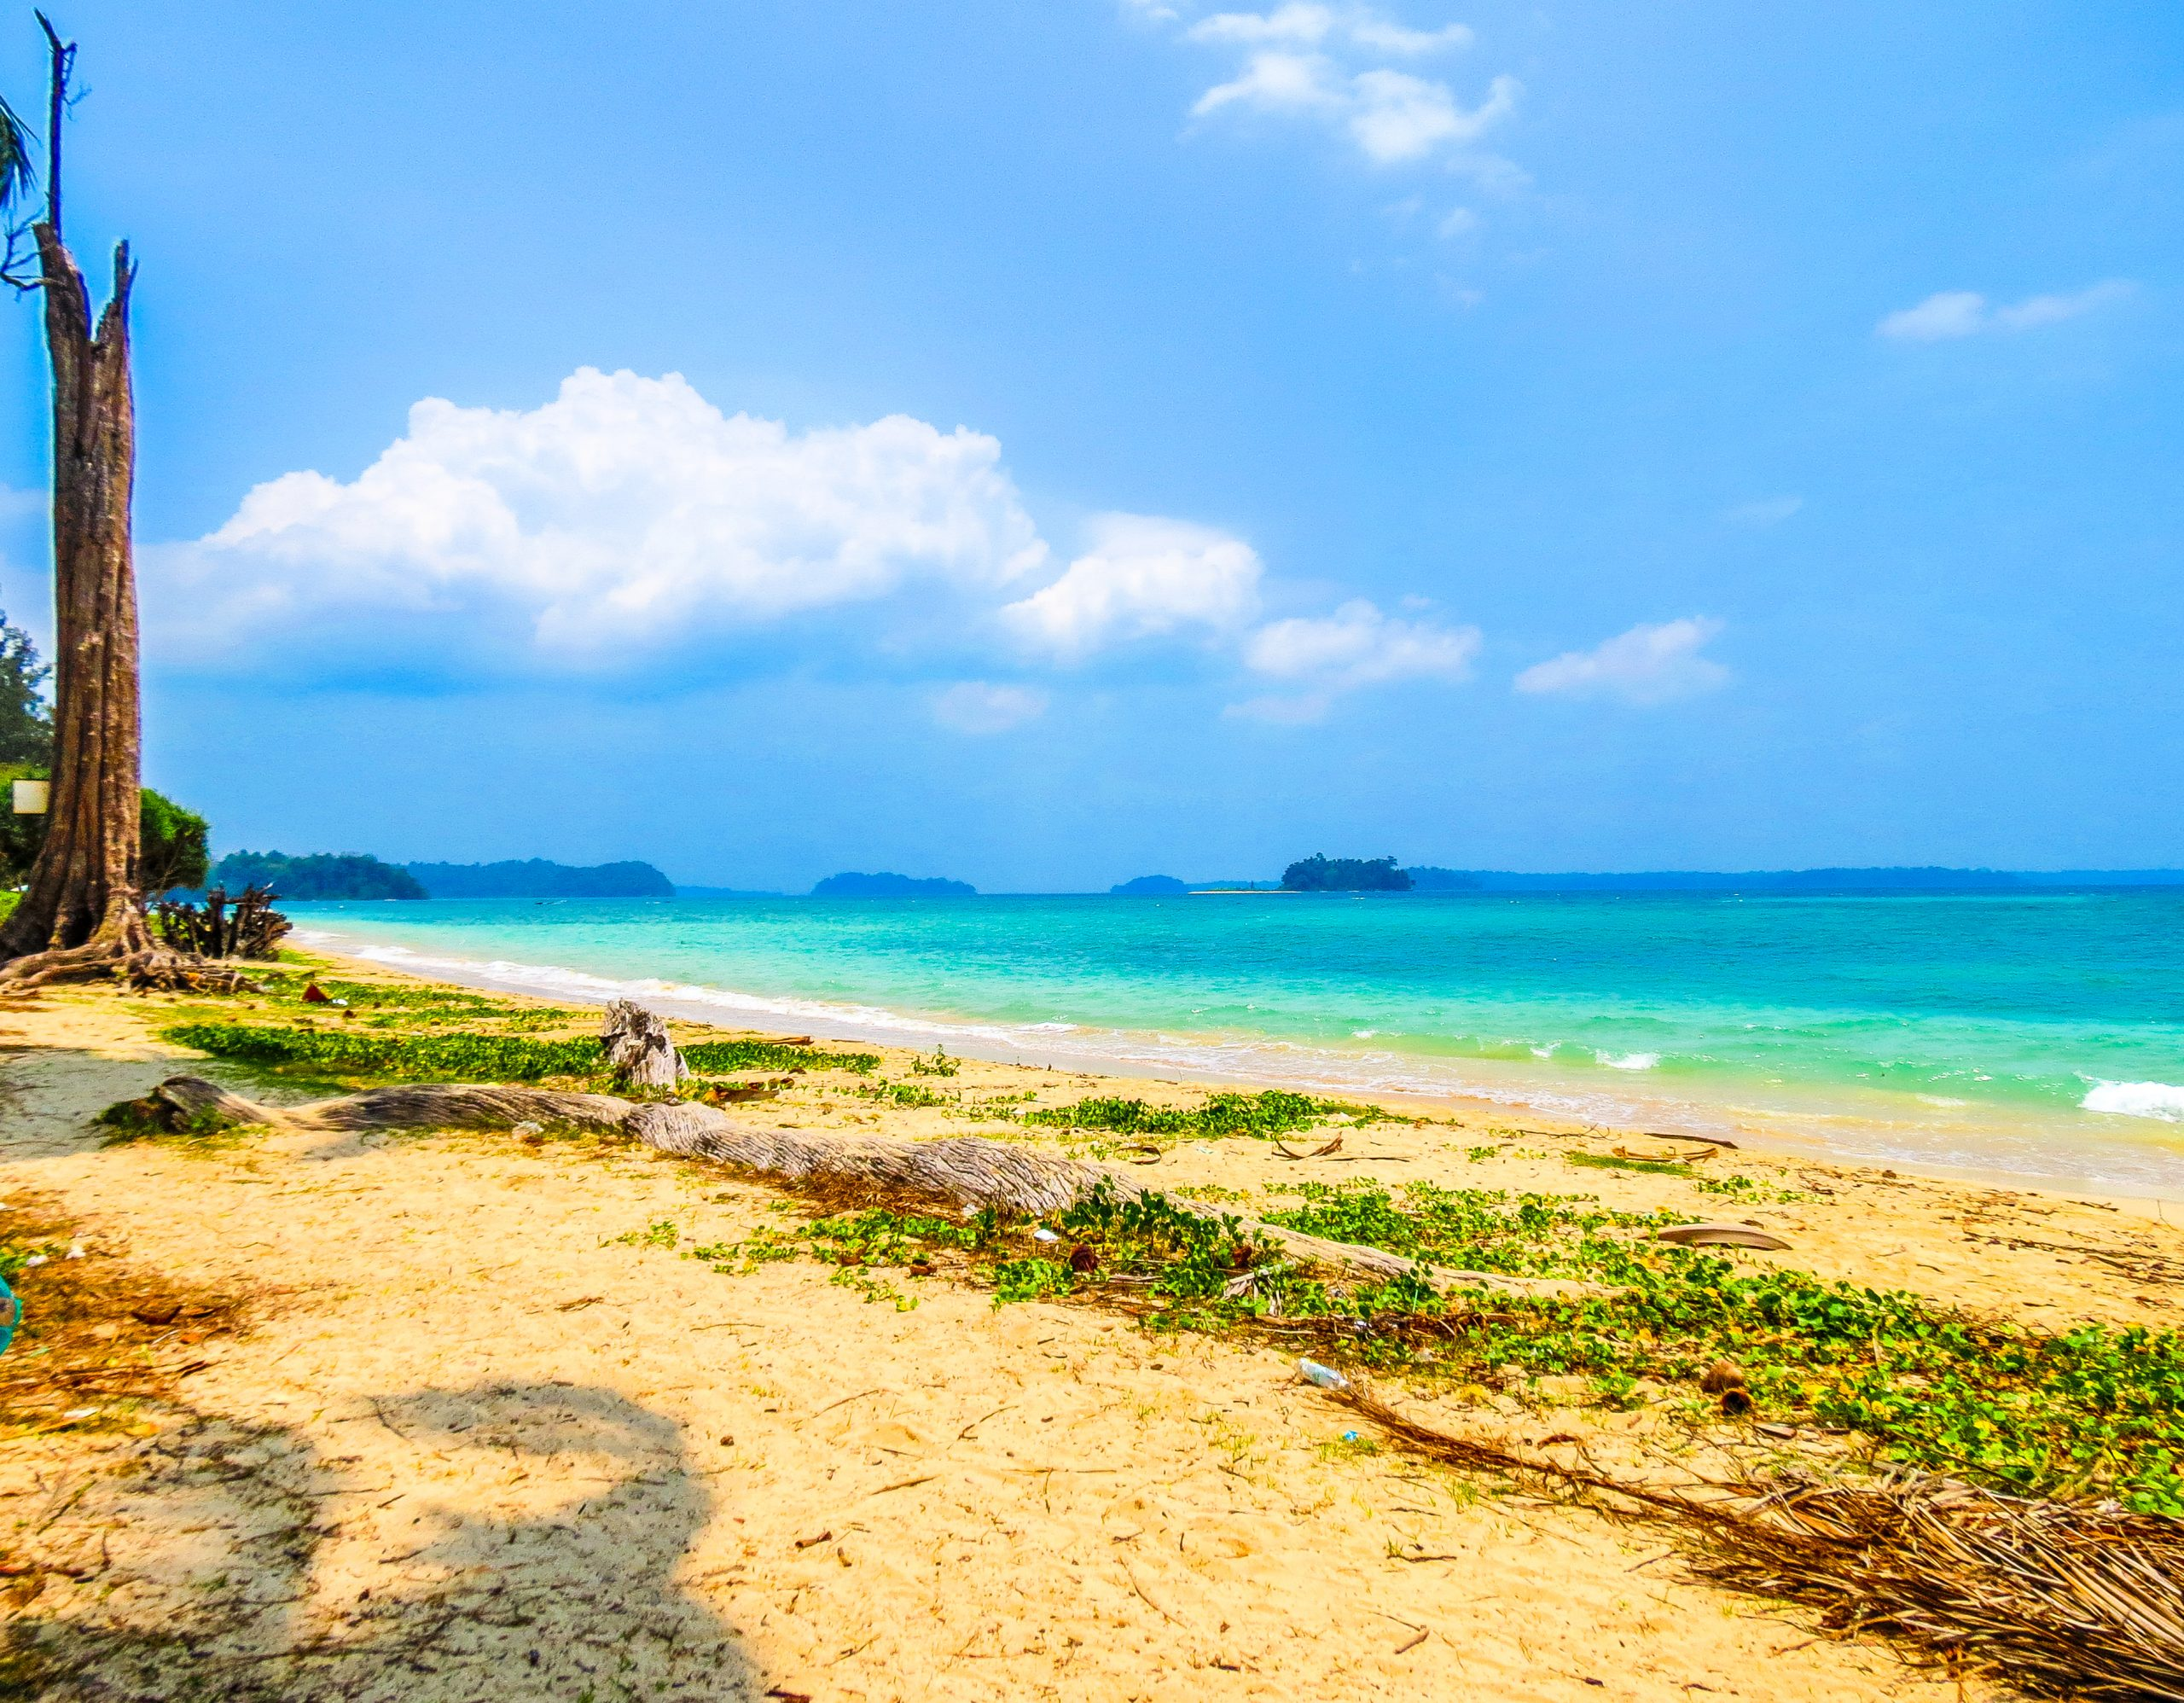 Beach view of Andaman